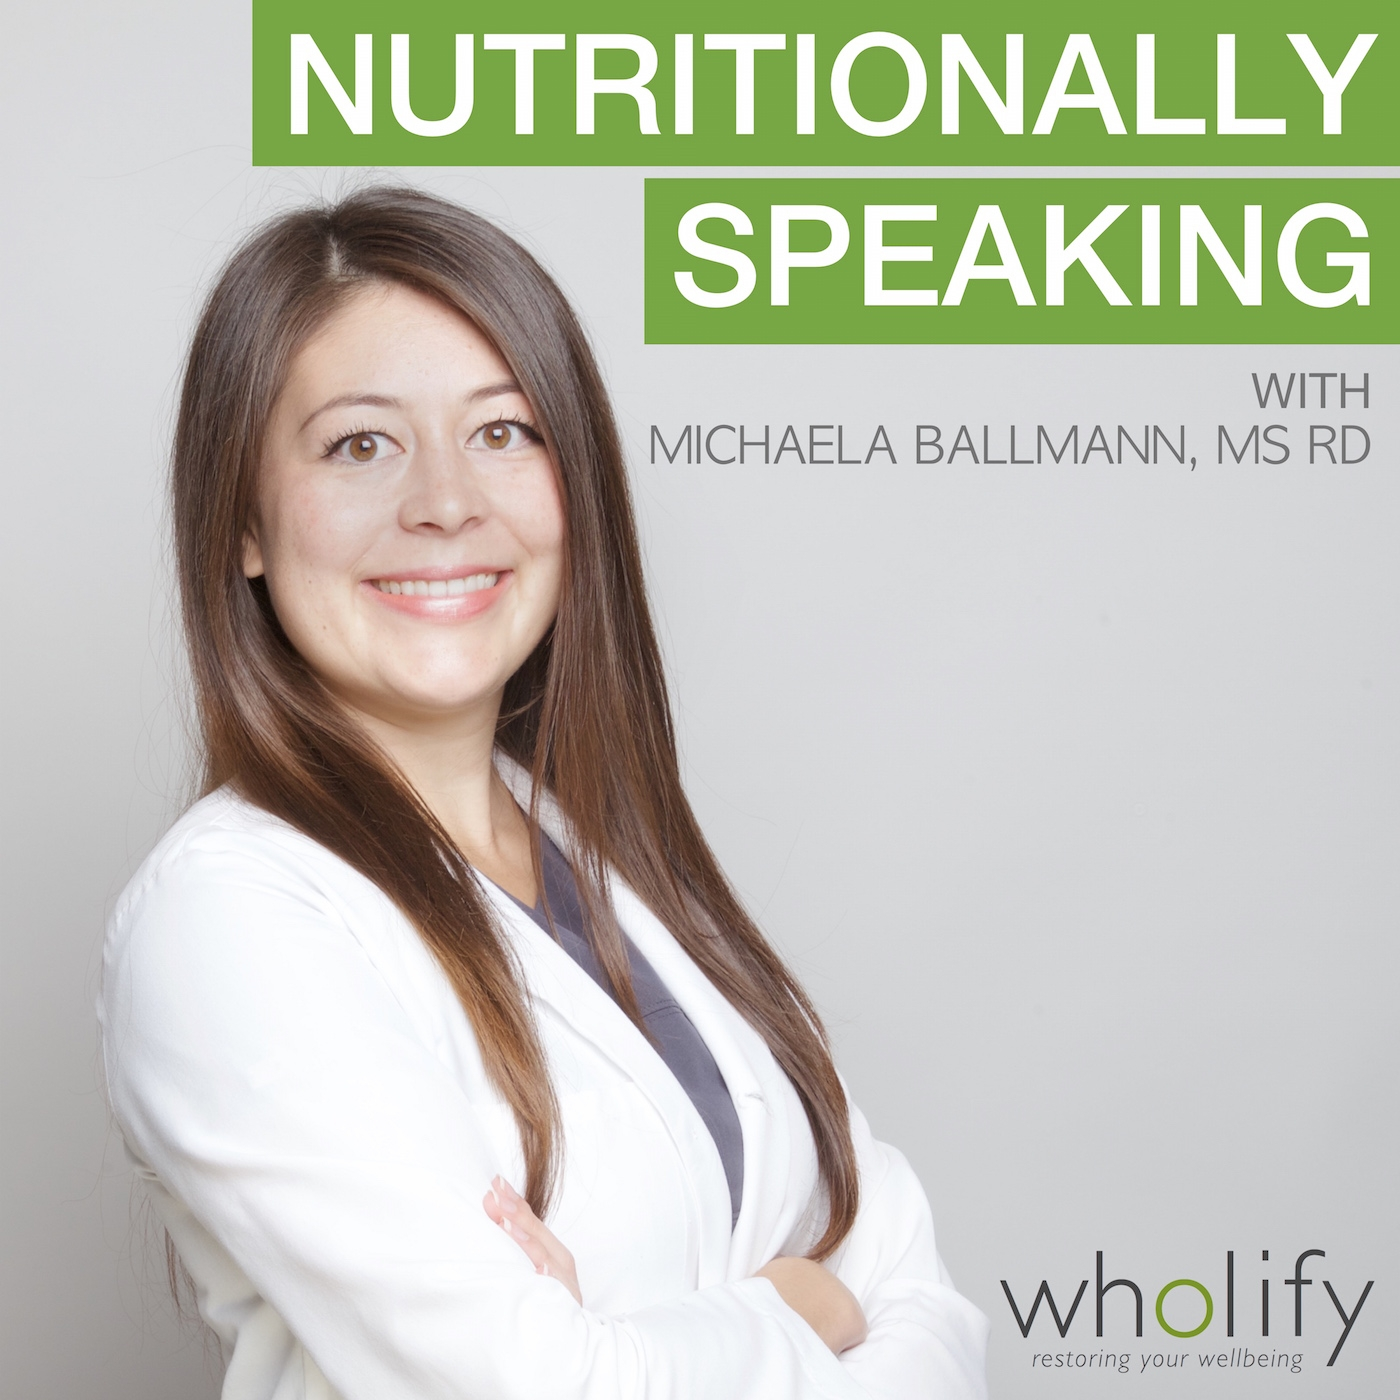 Nutritionally Speaking – Wholify